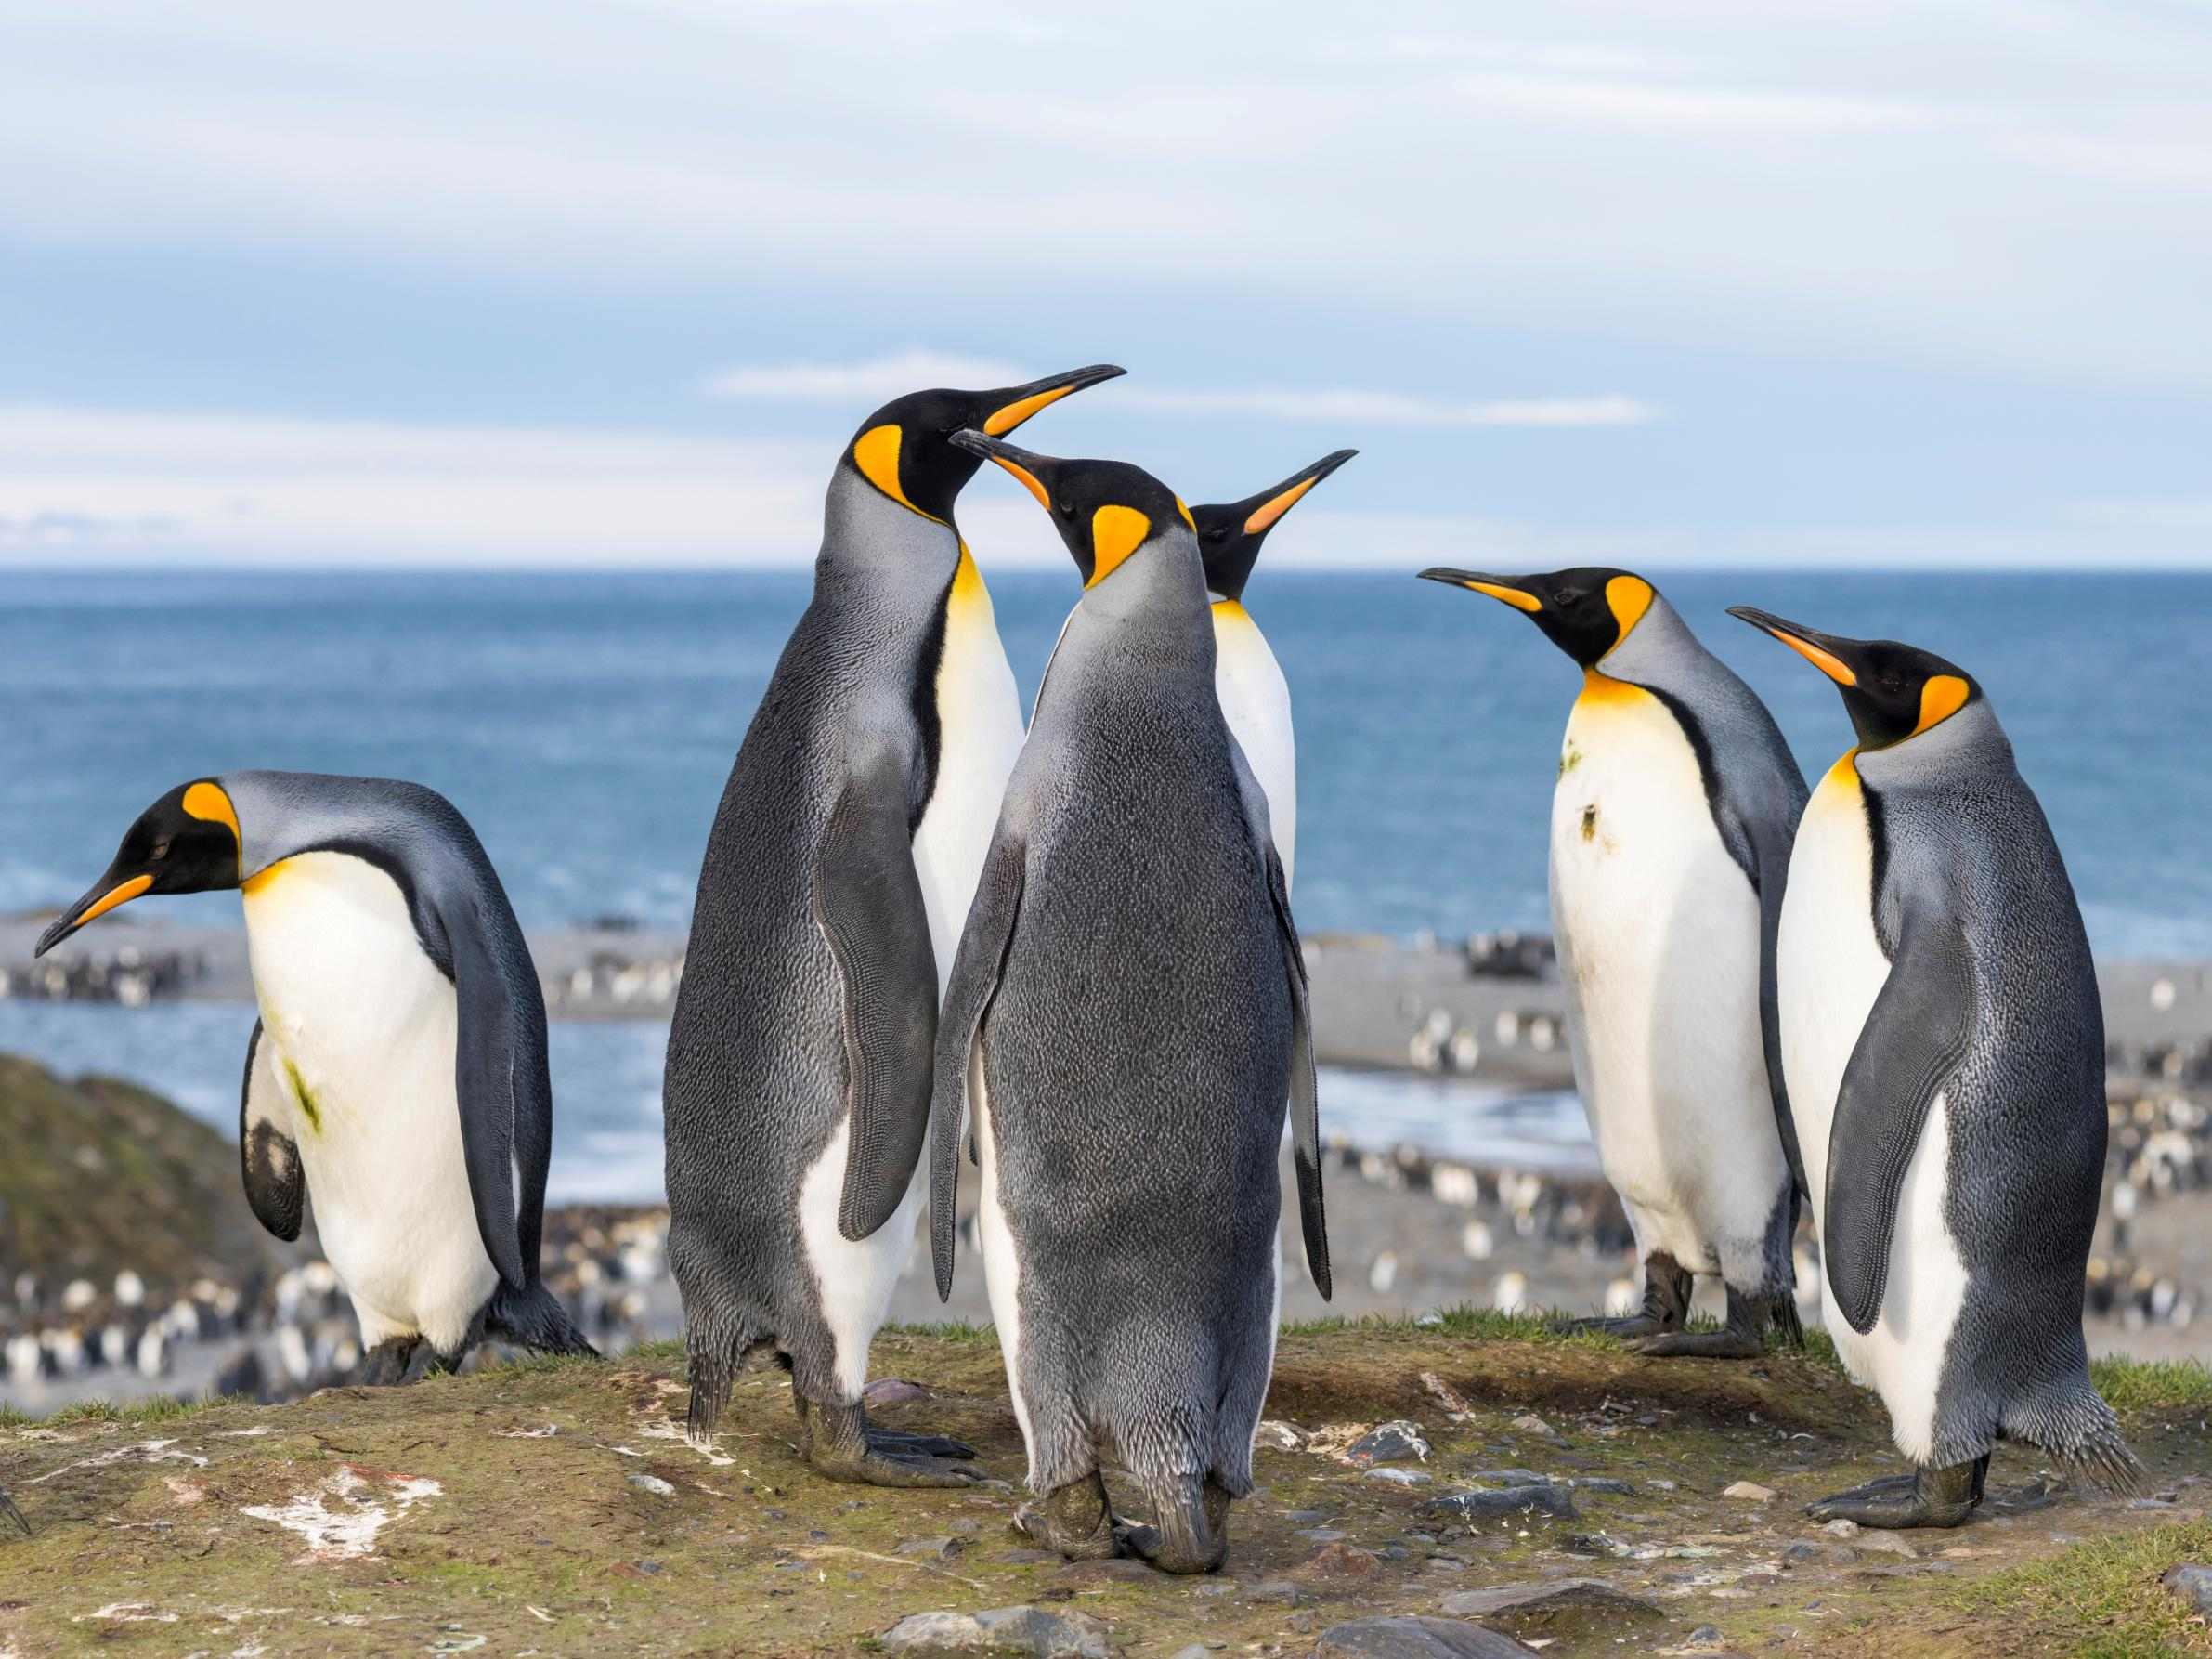 Antarctic penguins release an extreme amount of laughing gas in their feces, it turns out